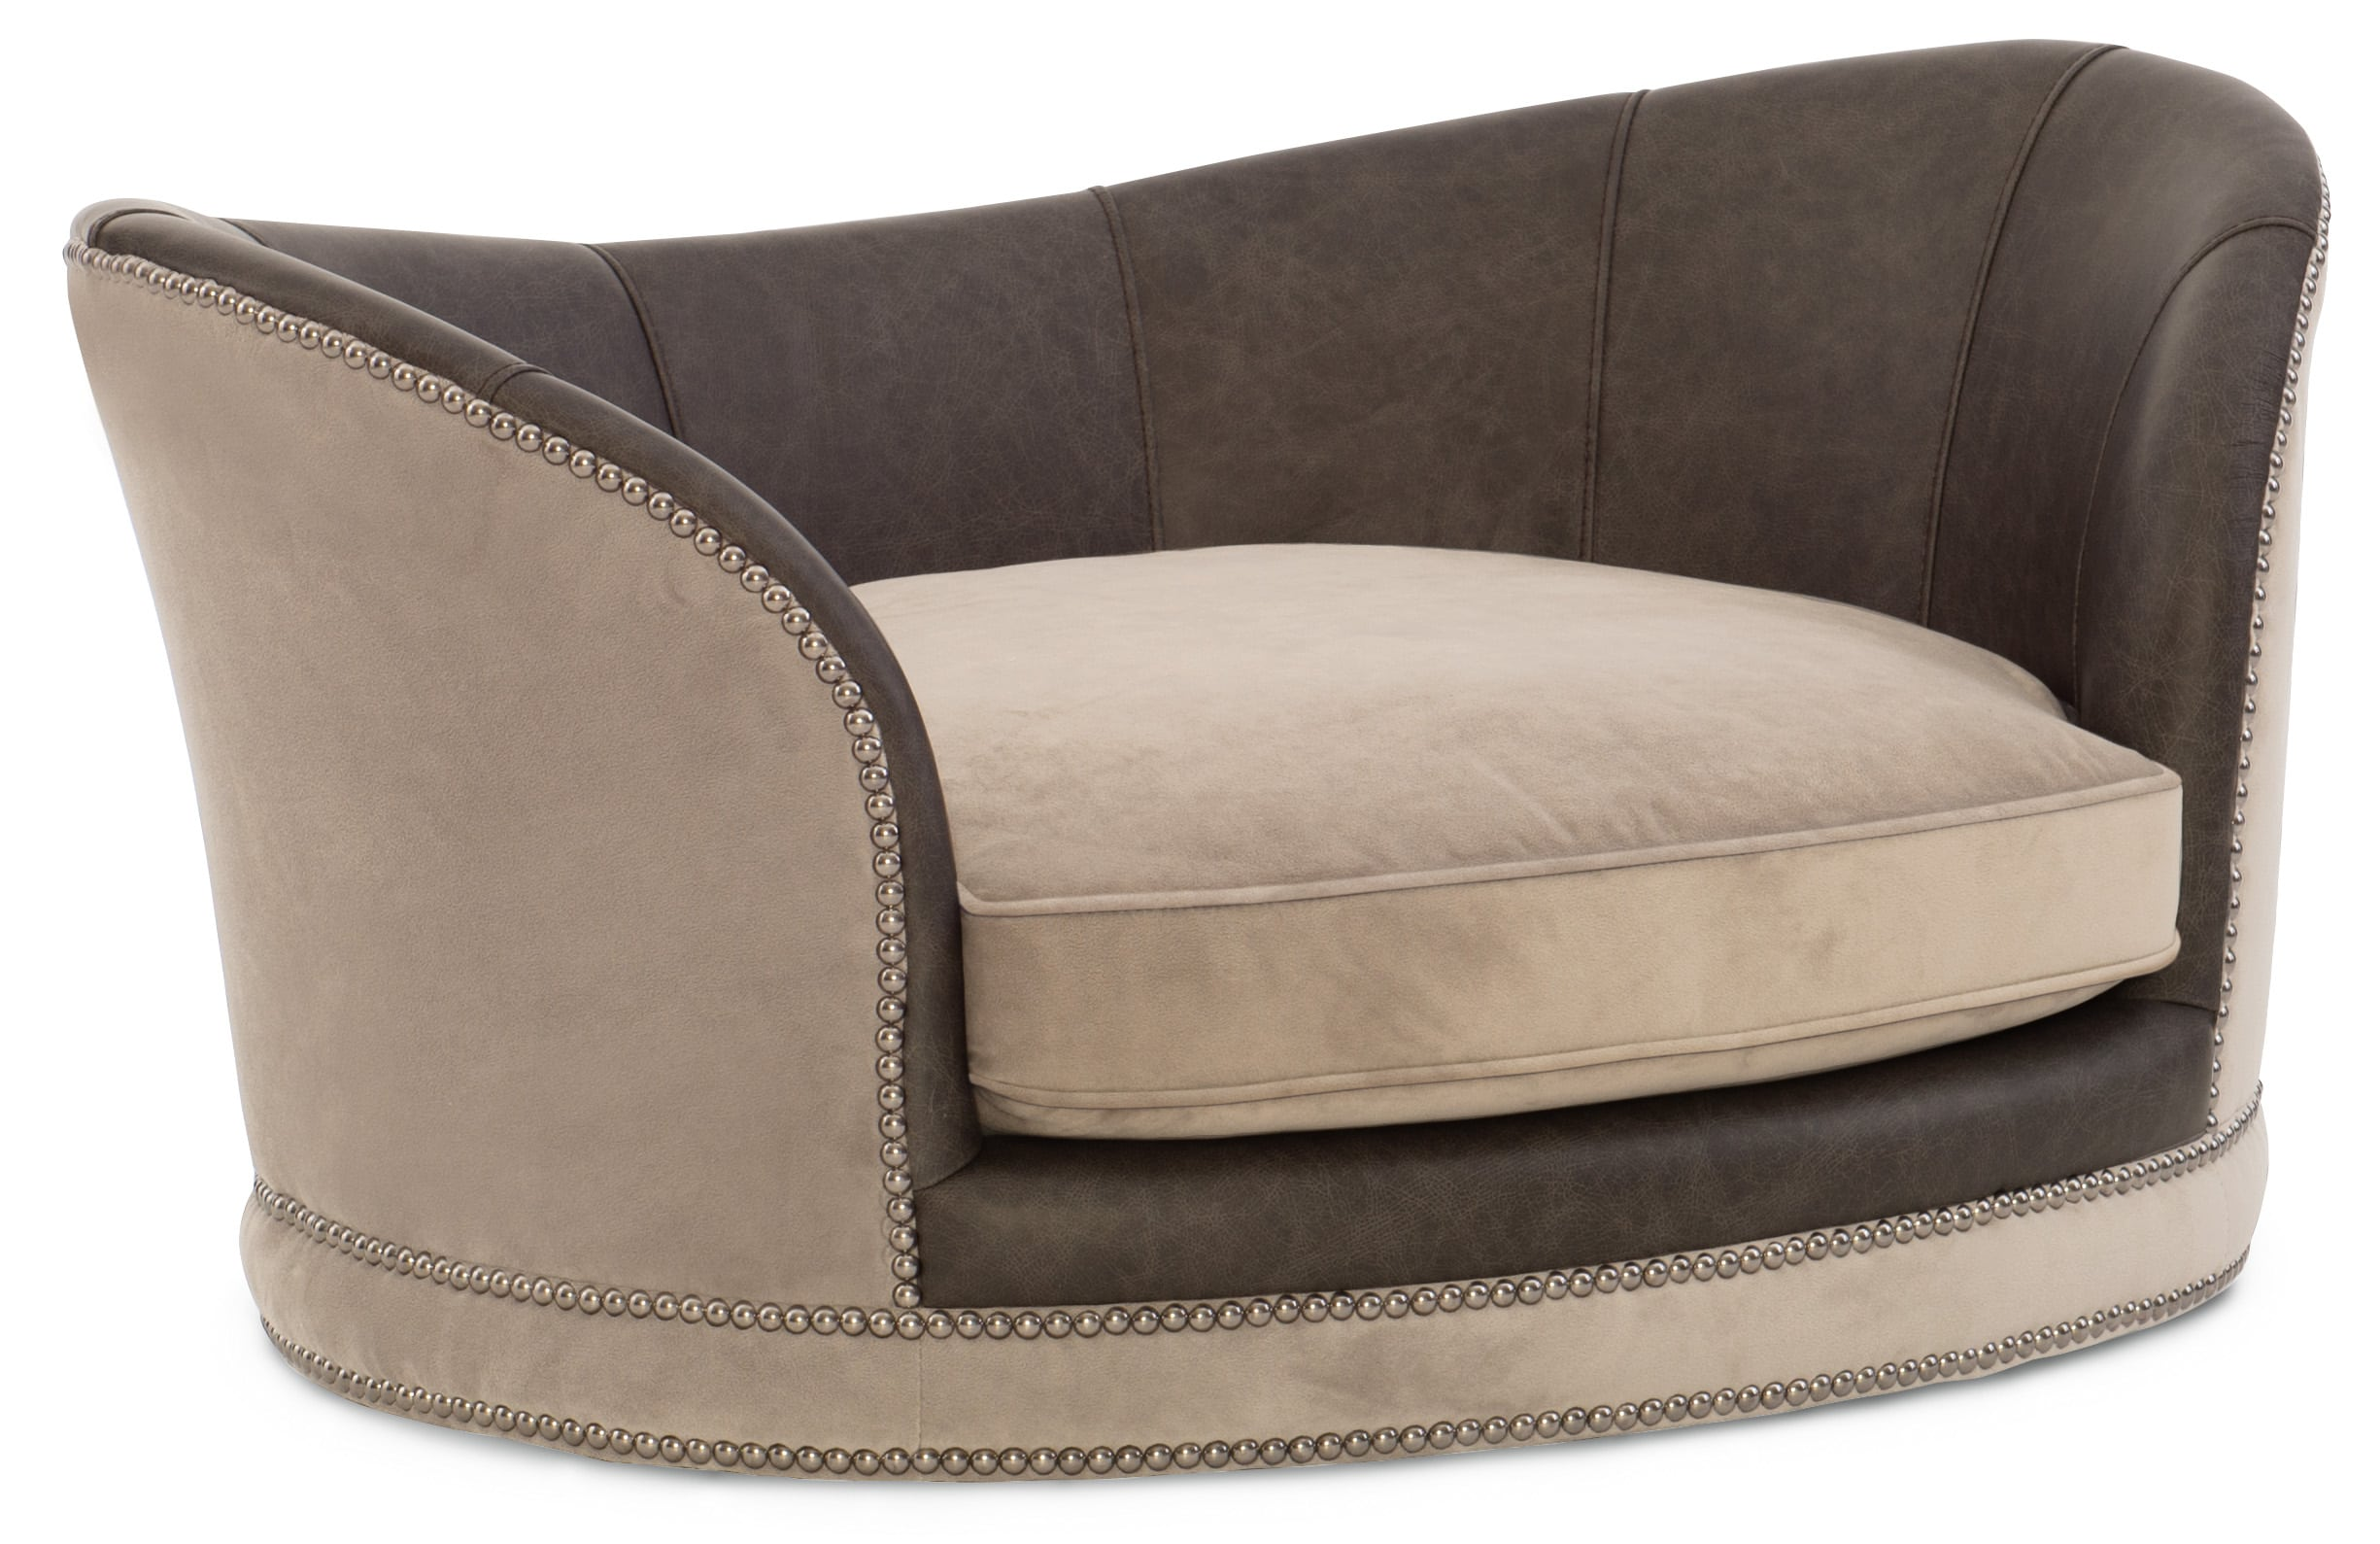 Fido Medium Dog Bed